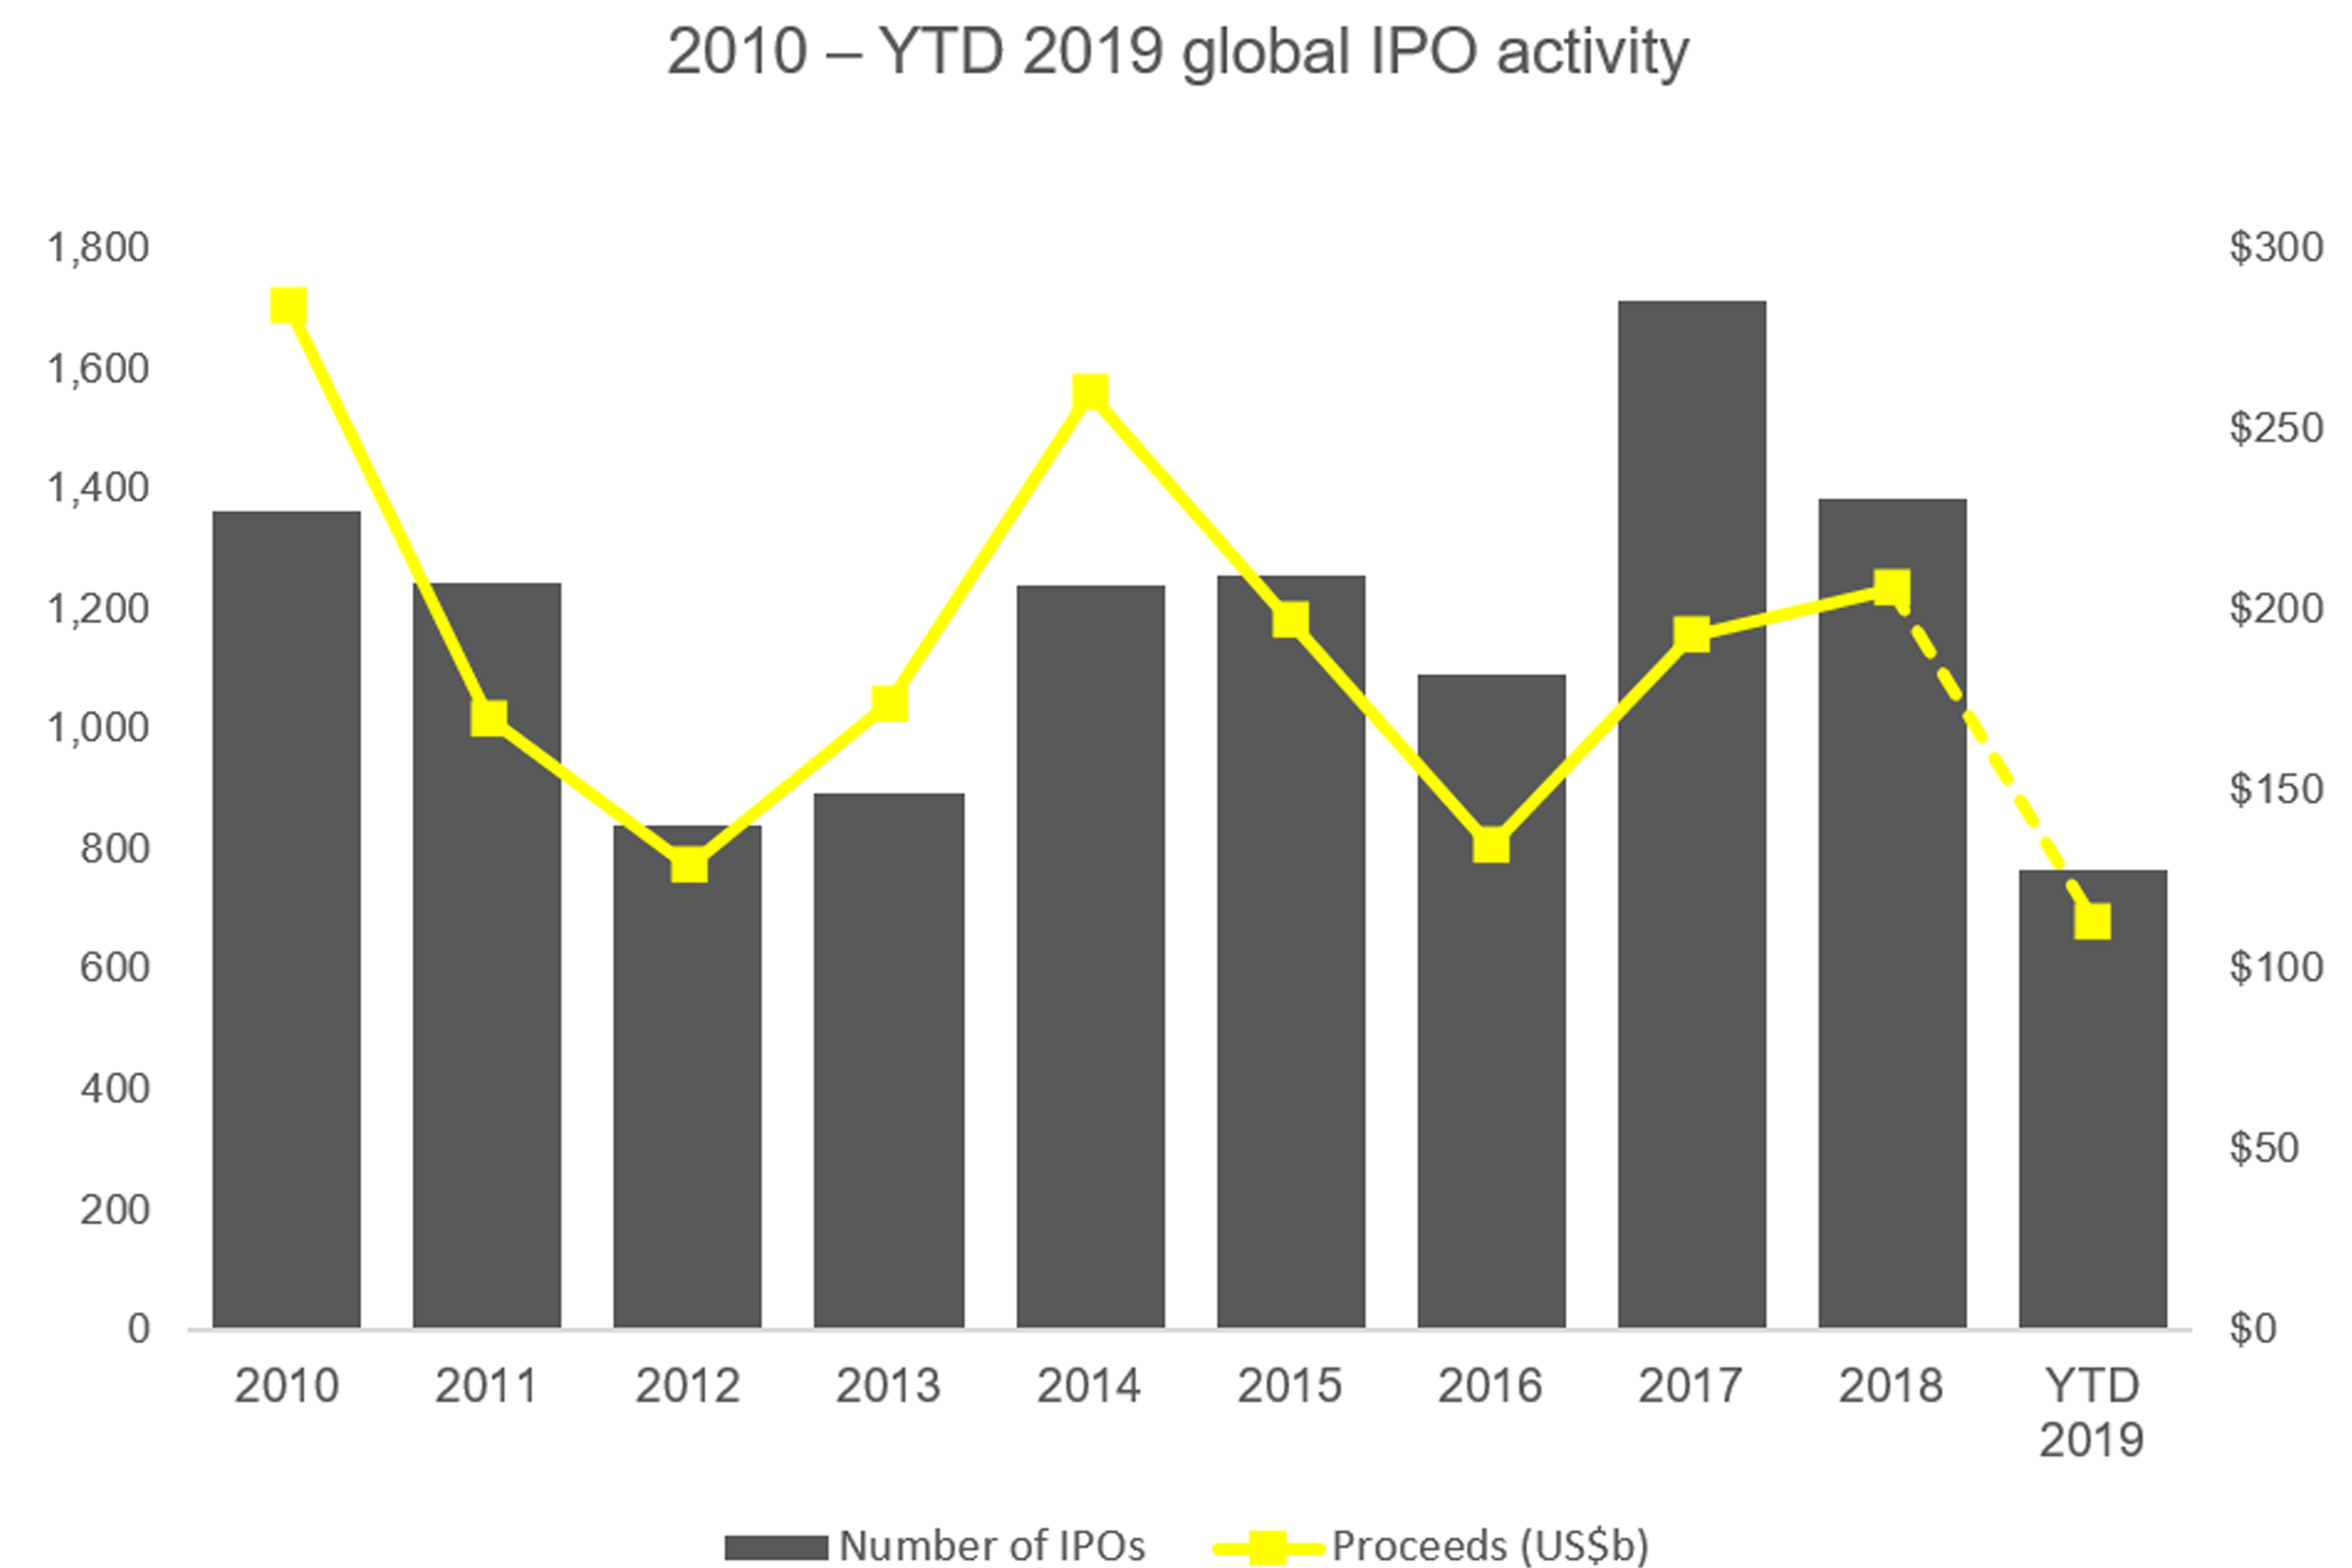 2010 – YTD 2019 global IPO activity